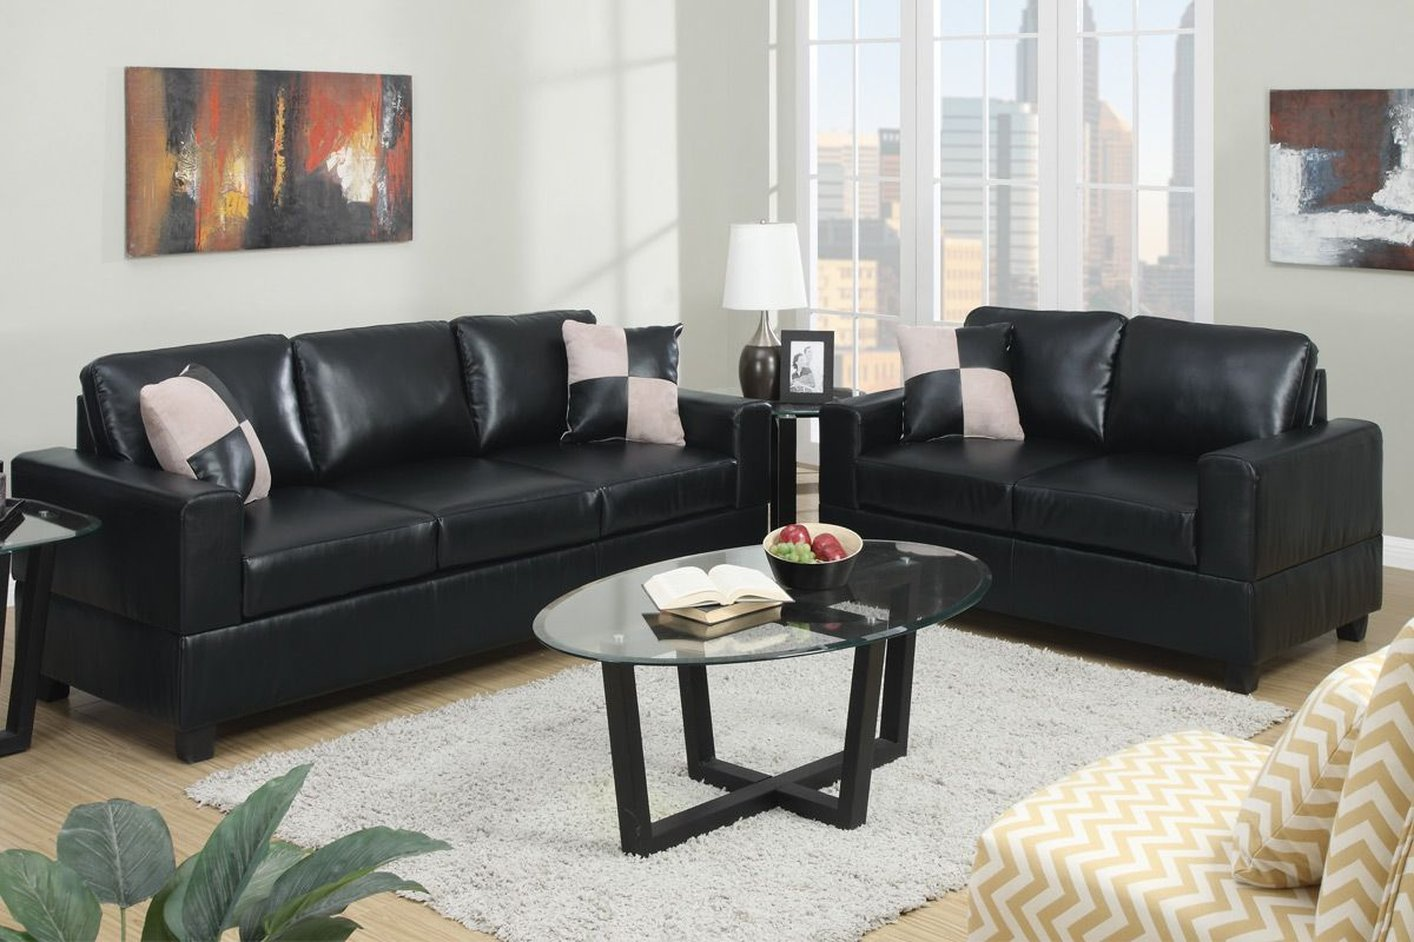 Poundex tesse f7598 black leather sofa and loveseat set steal a sofa furniture outlet los Sofa loveseat